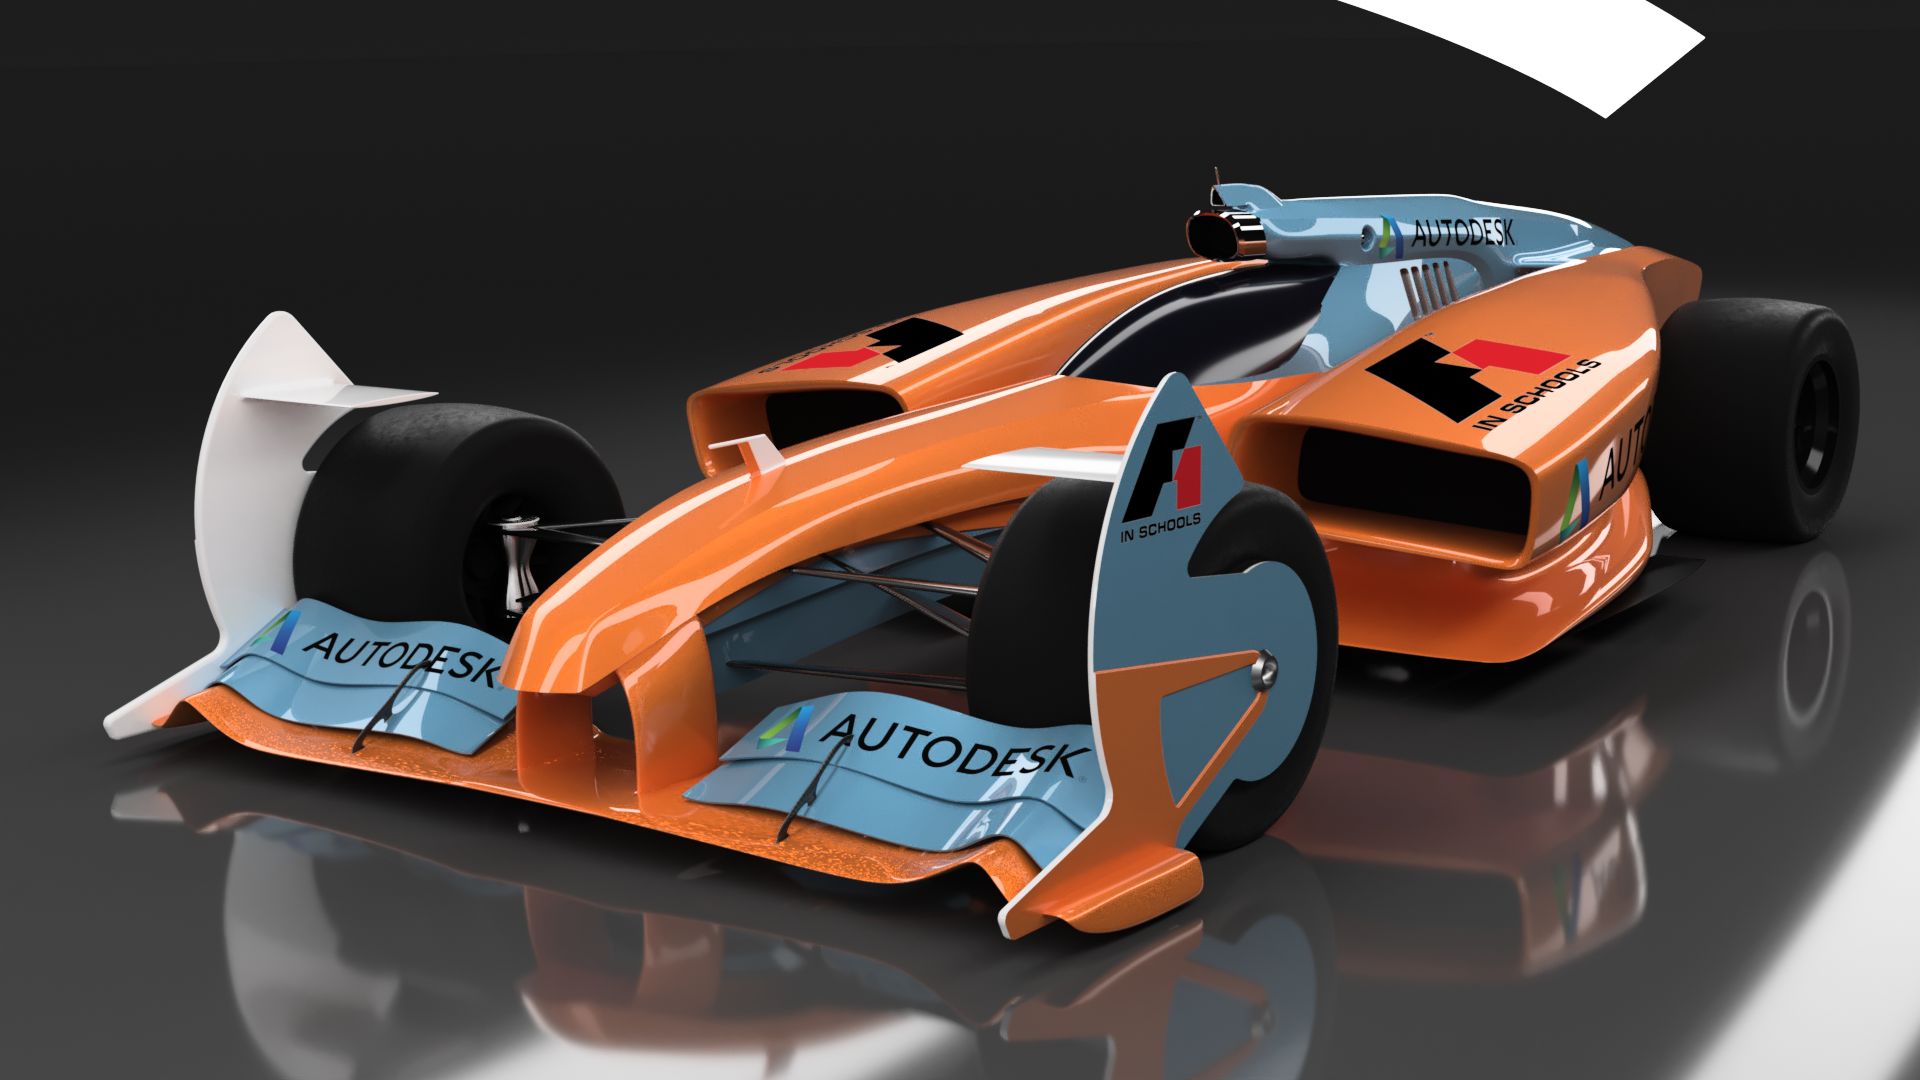 Formula1_Decal_RaceCar_2016-Oct-20_03-36